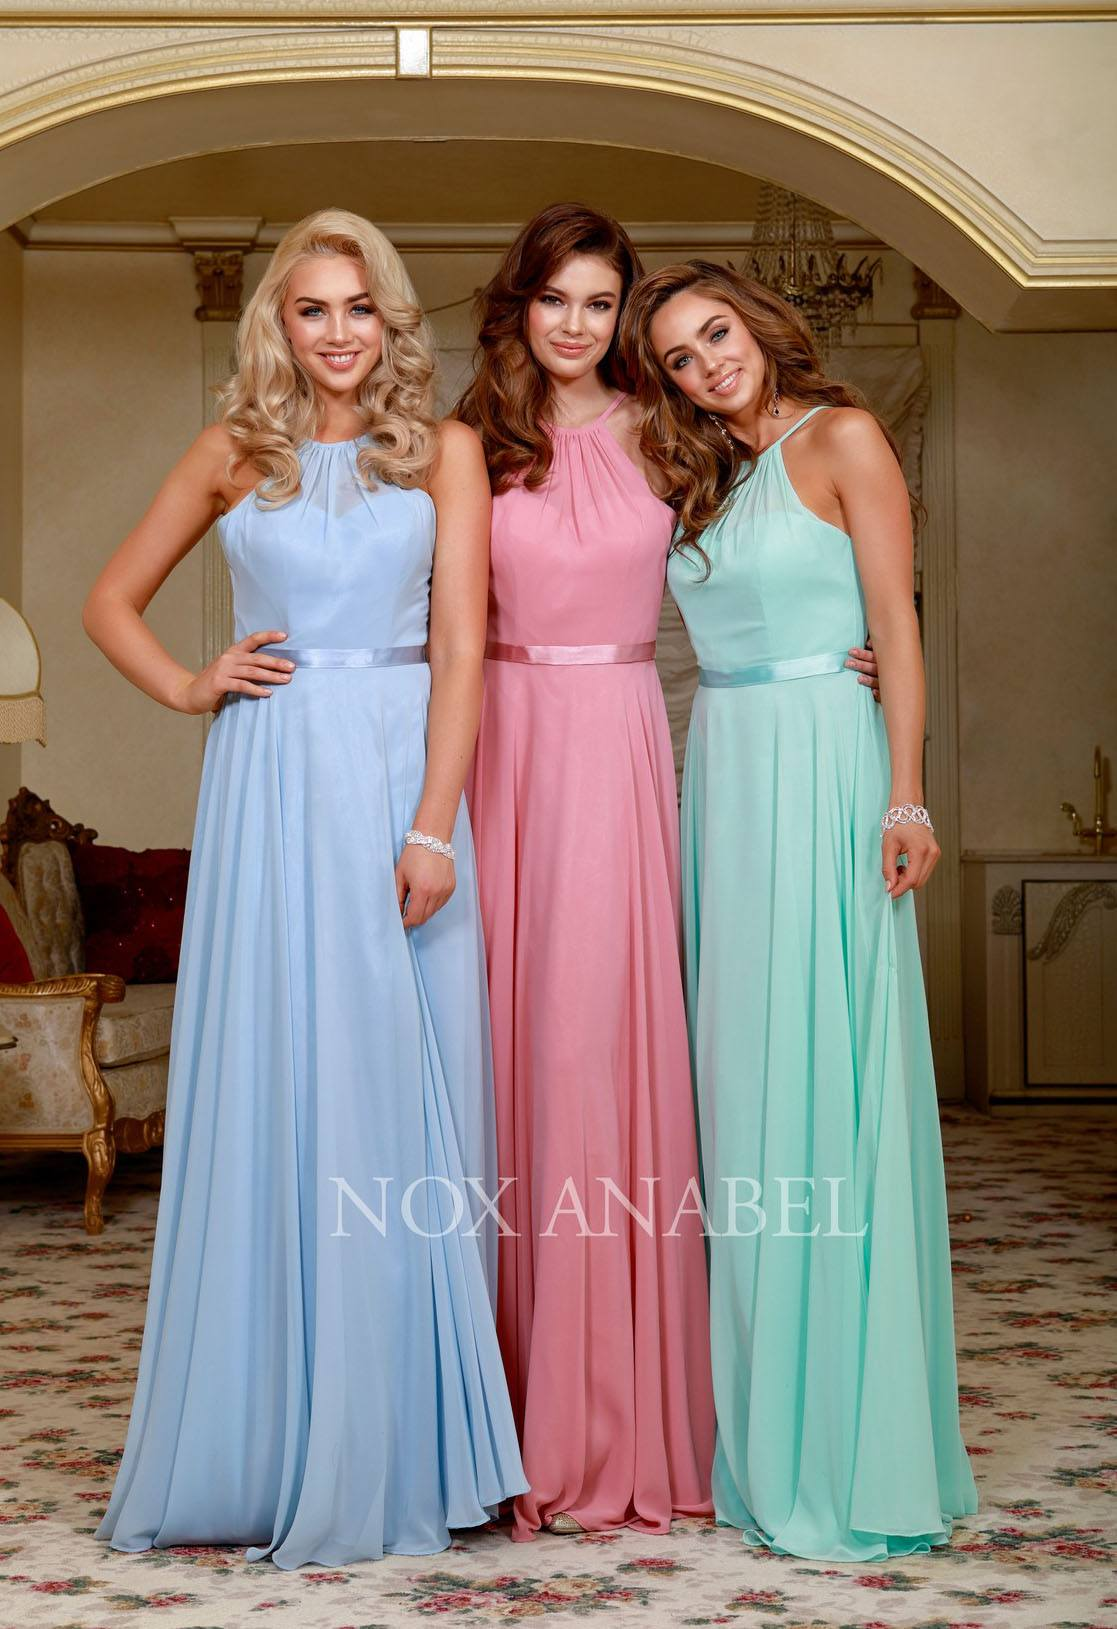 Nox Anabel Y102 Champagne Halter A-line Bridesmaid Gown Corset Lace ...